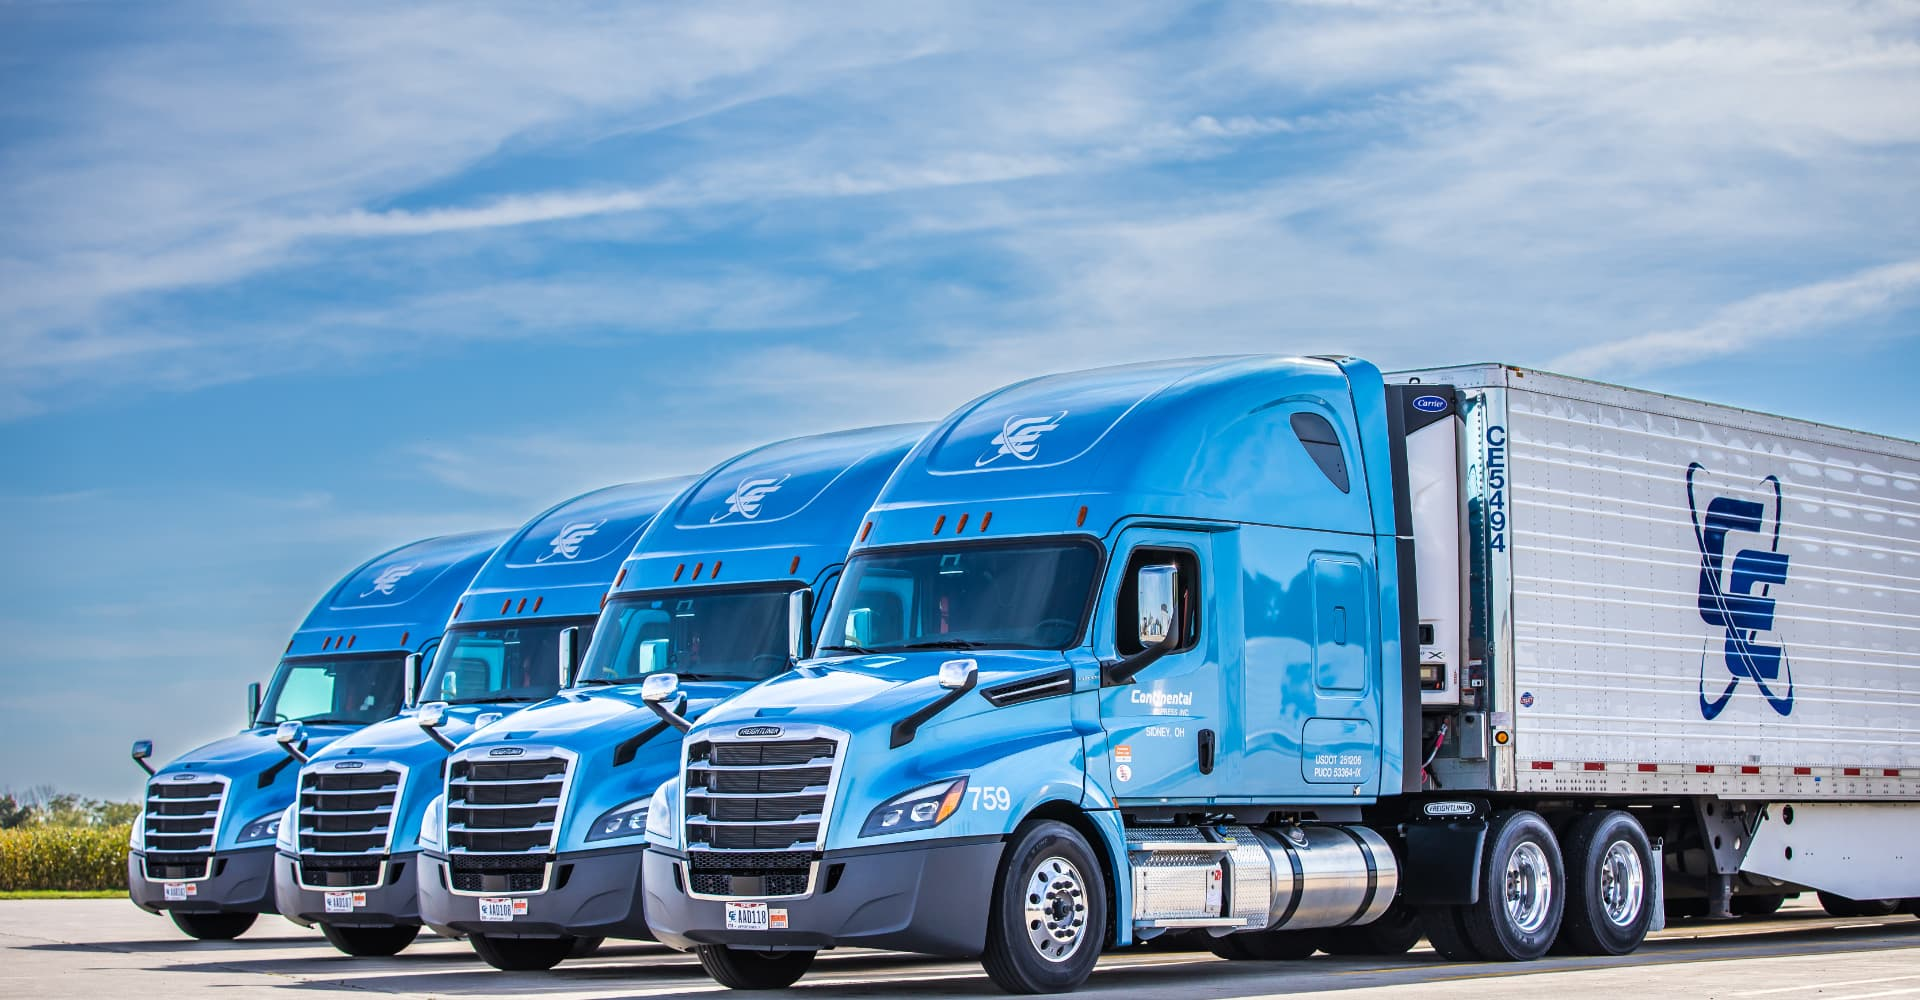 Continental Express truck fleet